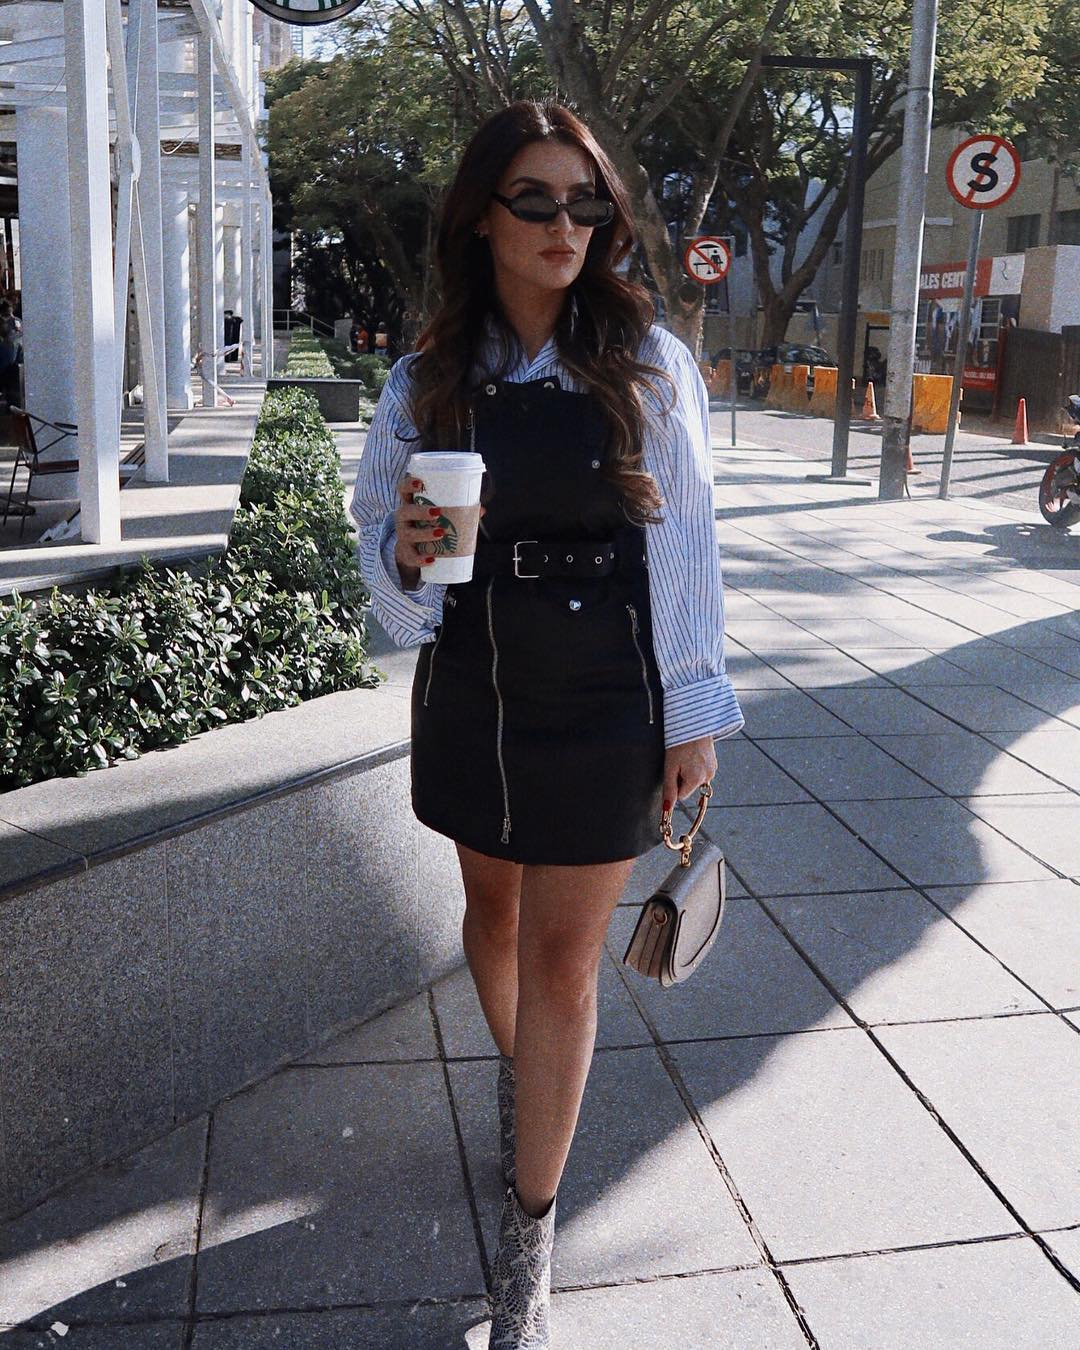 Black Biker Style Dress With Zip Detailing And Oversized Striped White Shirt Combo 2020